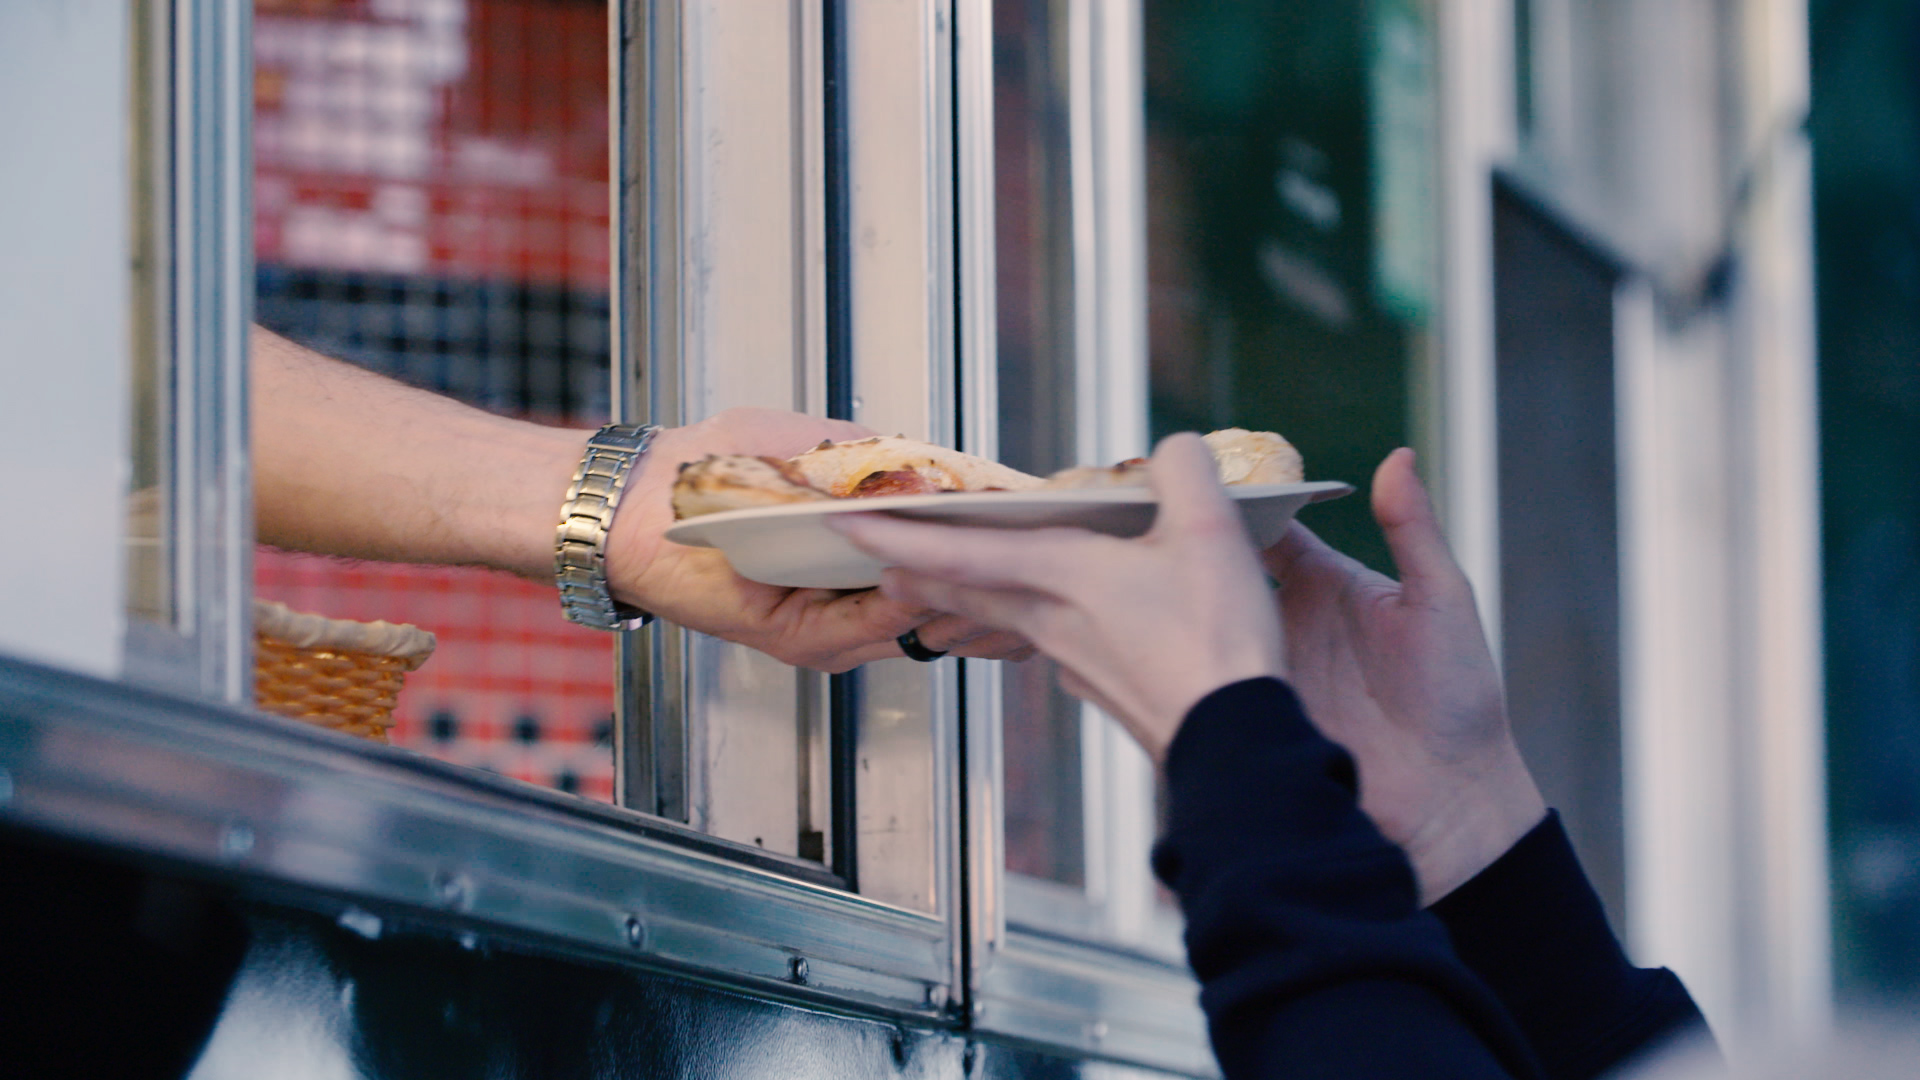 hands giving a plated slice of pizza to a customer's hands from the window of a food truck